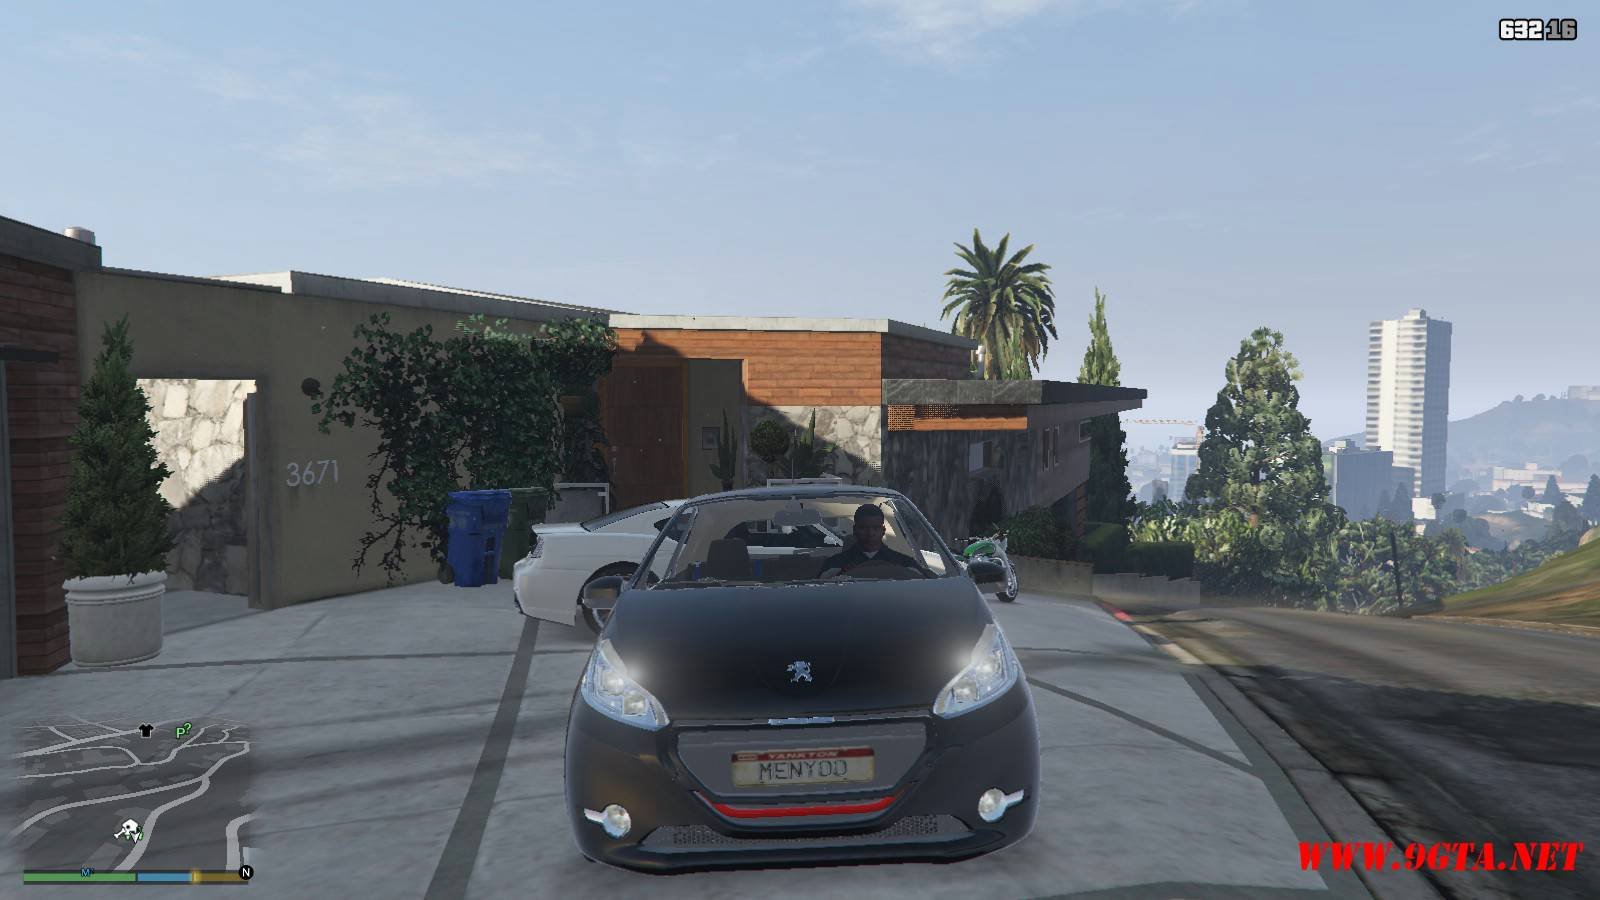 Peugeot 208 Mod For GTA5 (11)